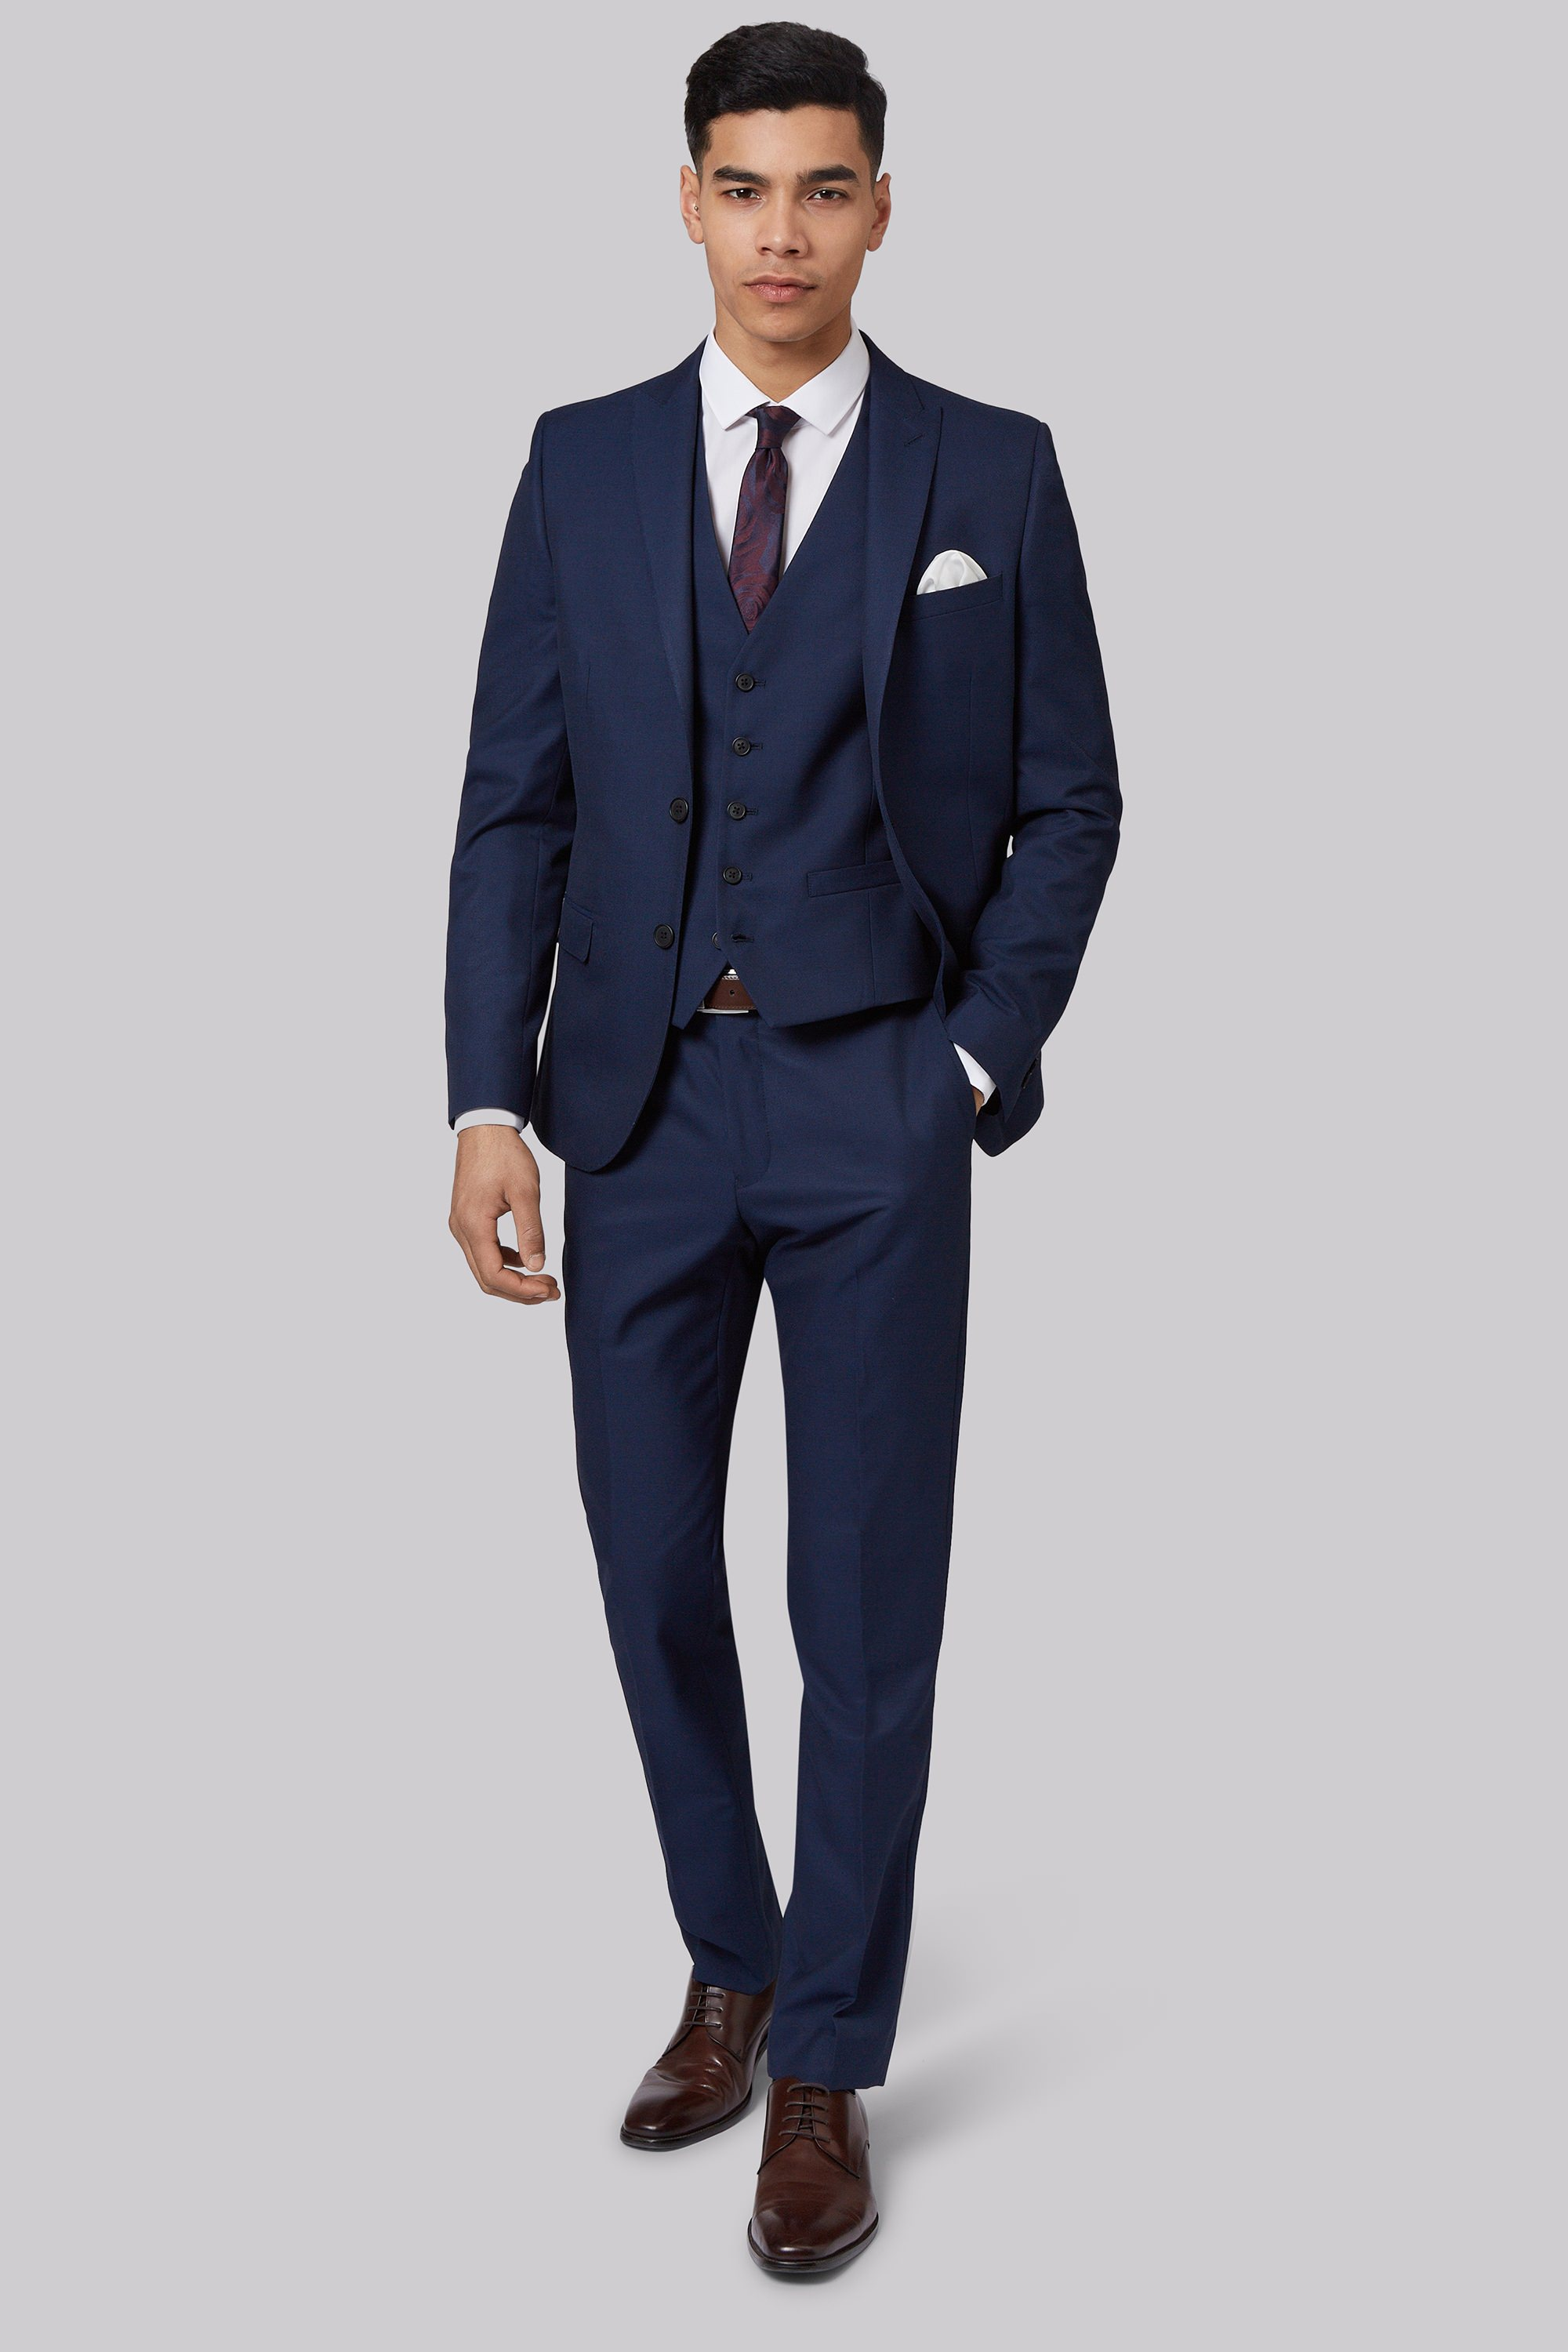 Men's Suits and Tuxedos - Shop The Latest Trends Online